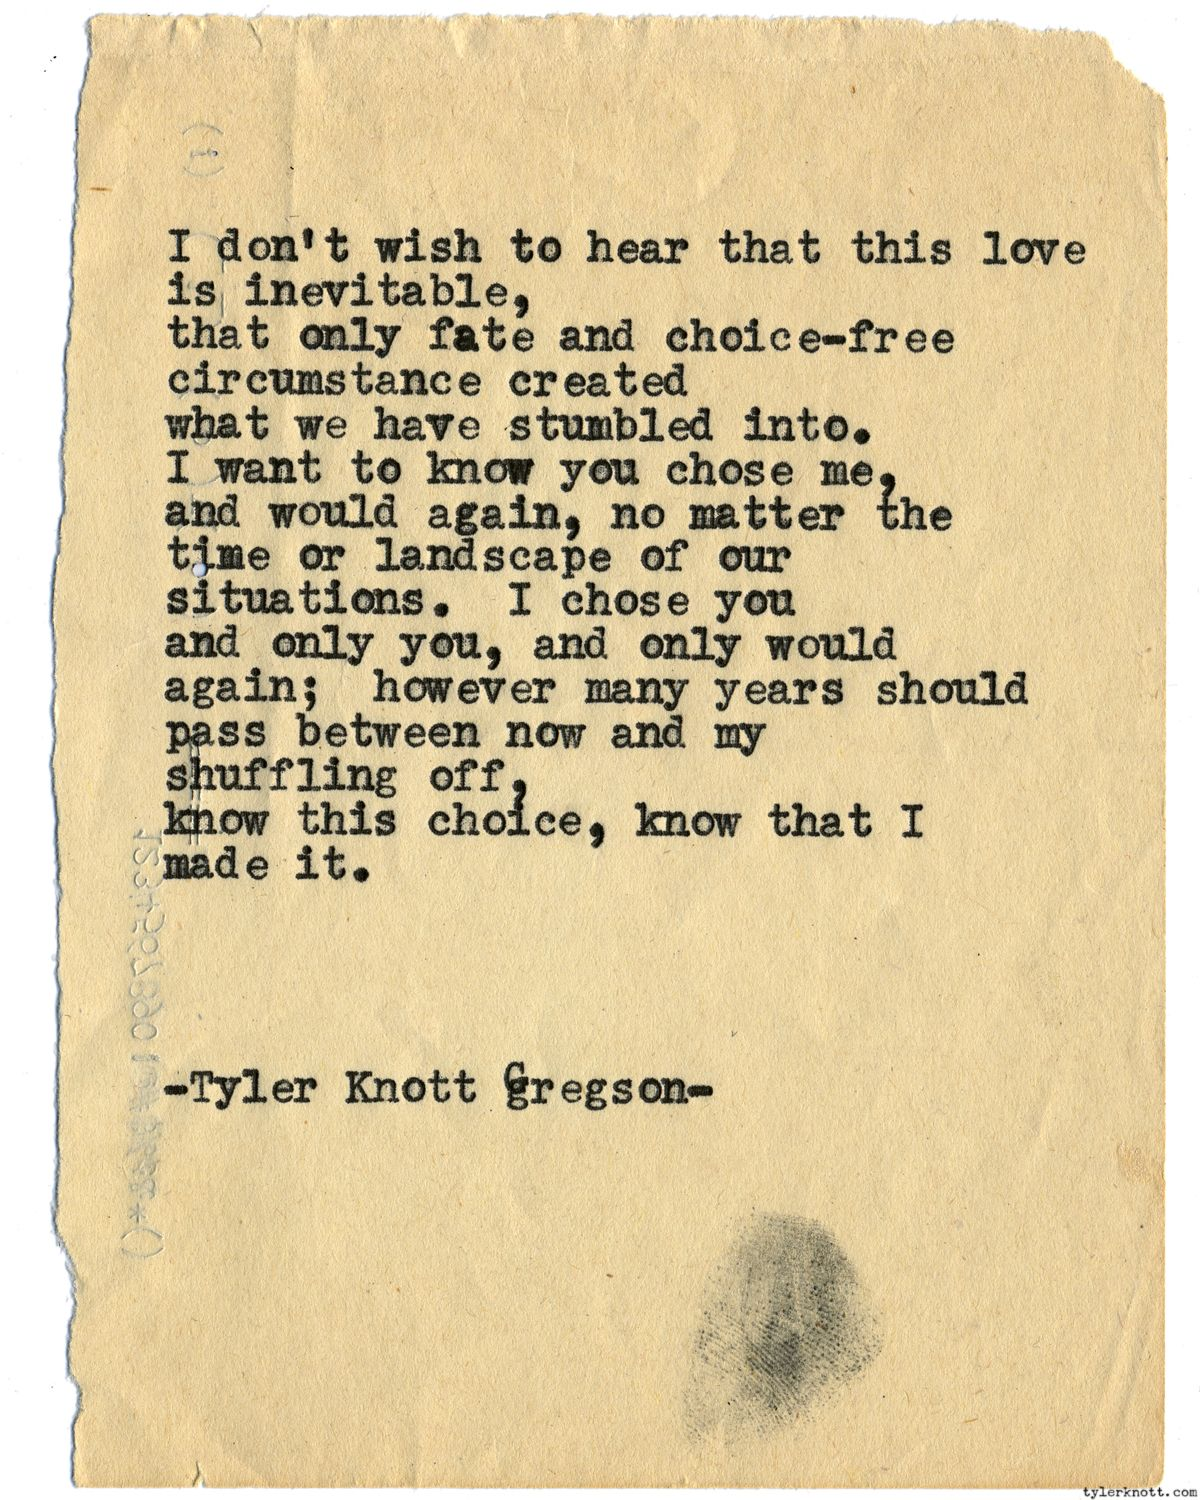 Tylerknott Typewriter Series By Tyler Knott Gregson Chasers Of The Light All Words Are Yours Out Now